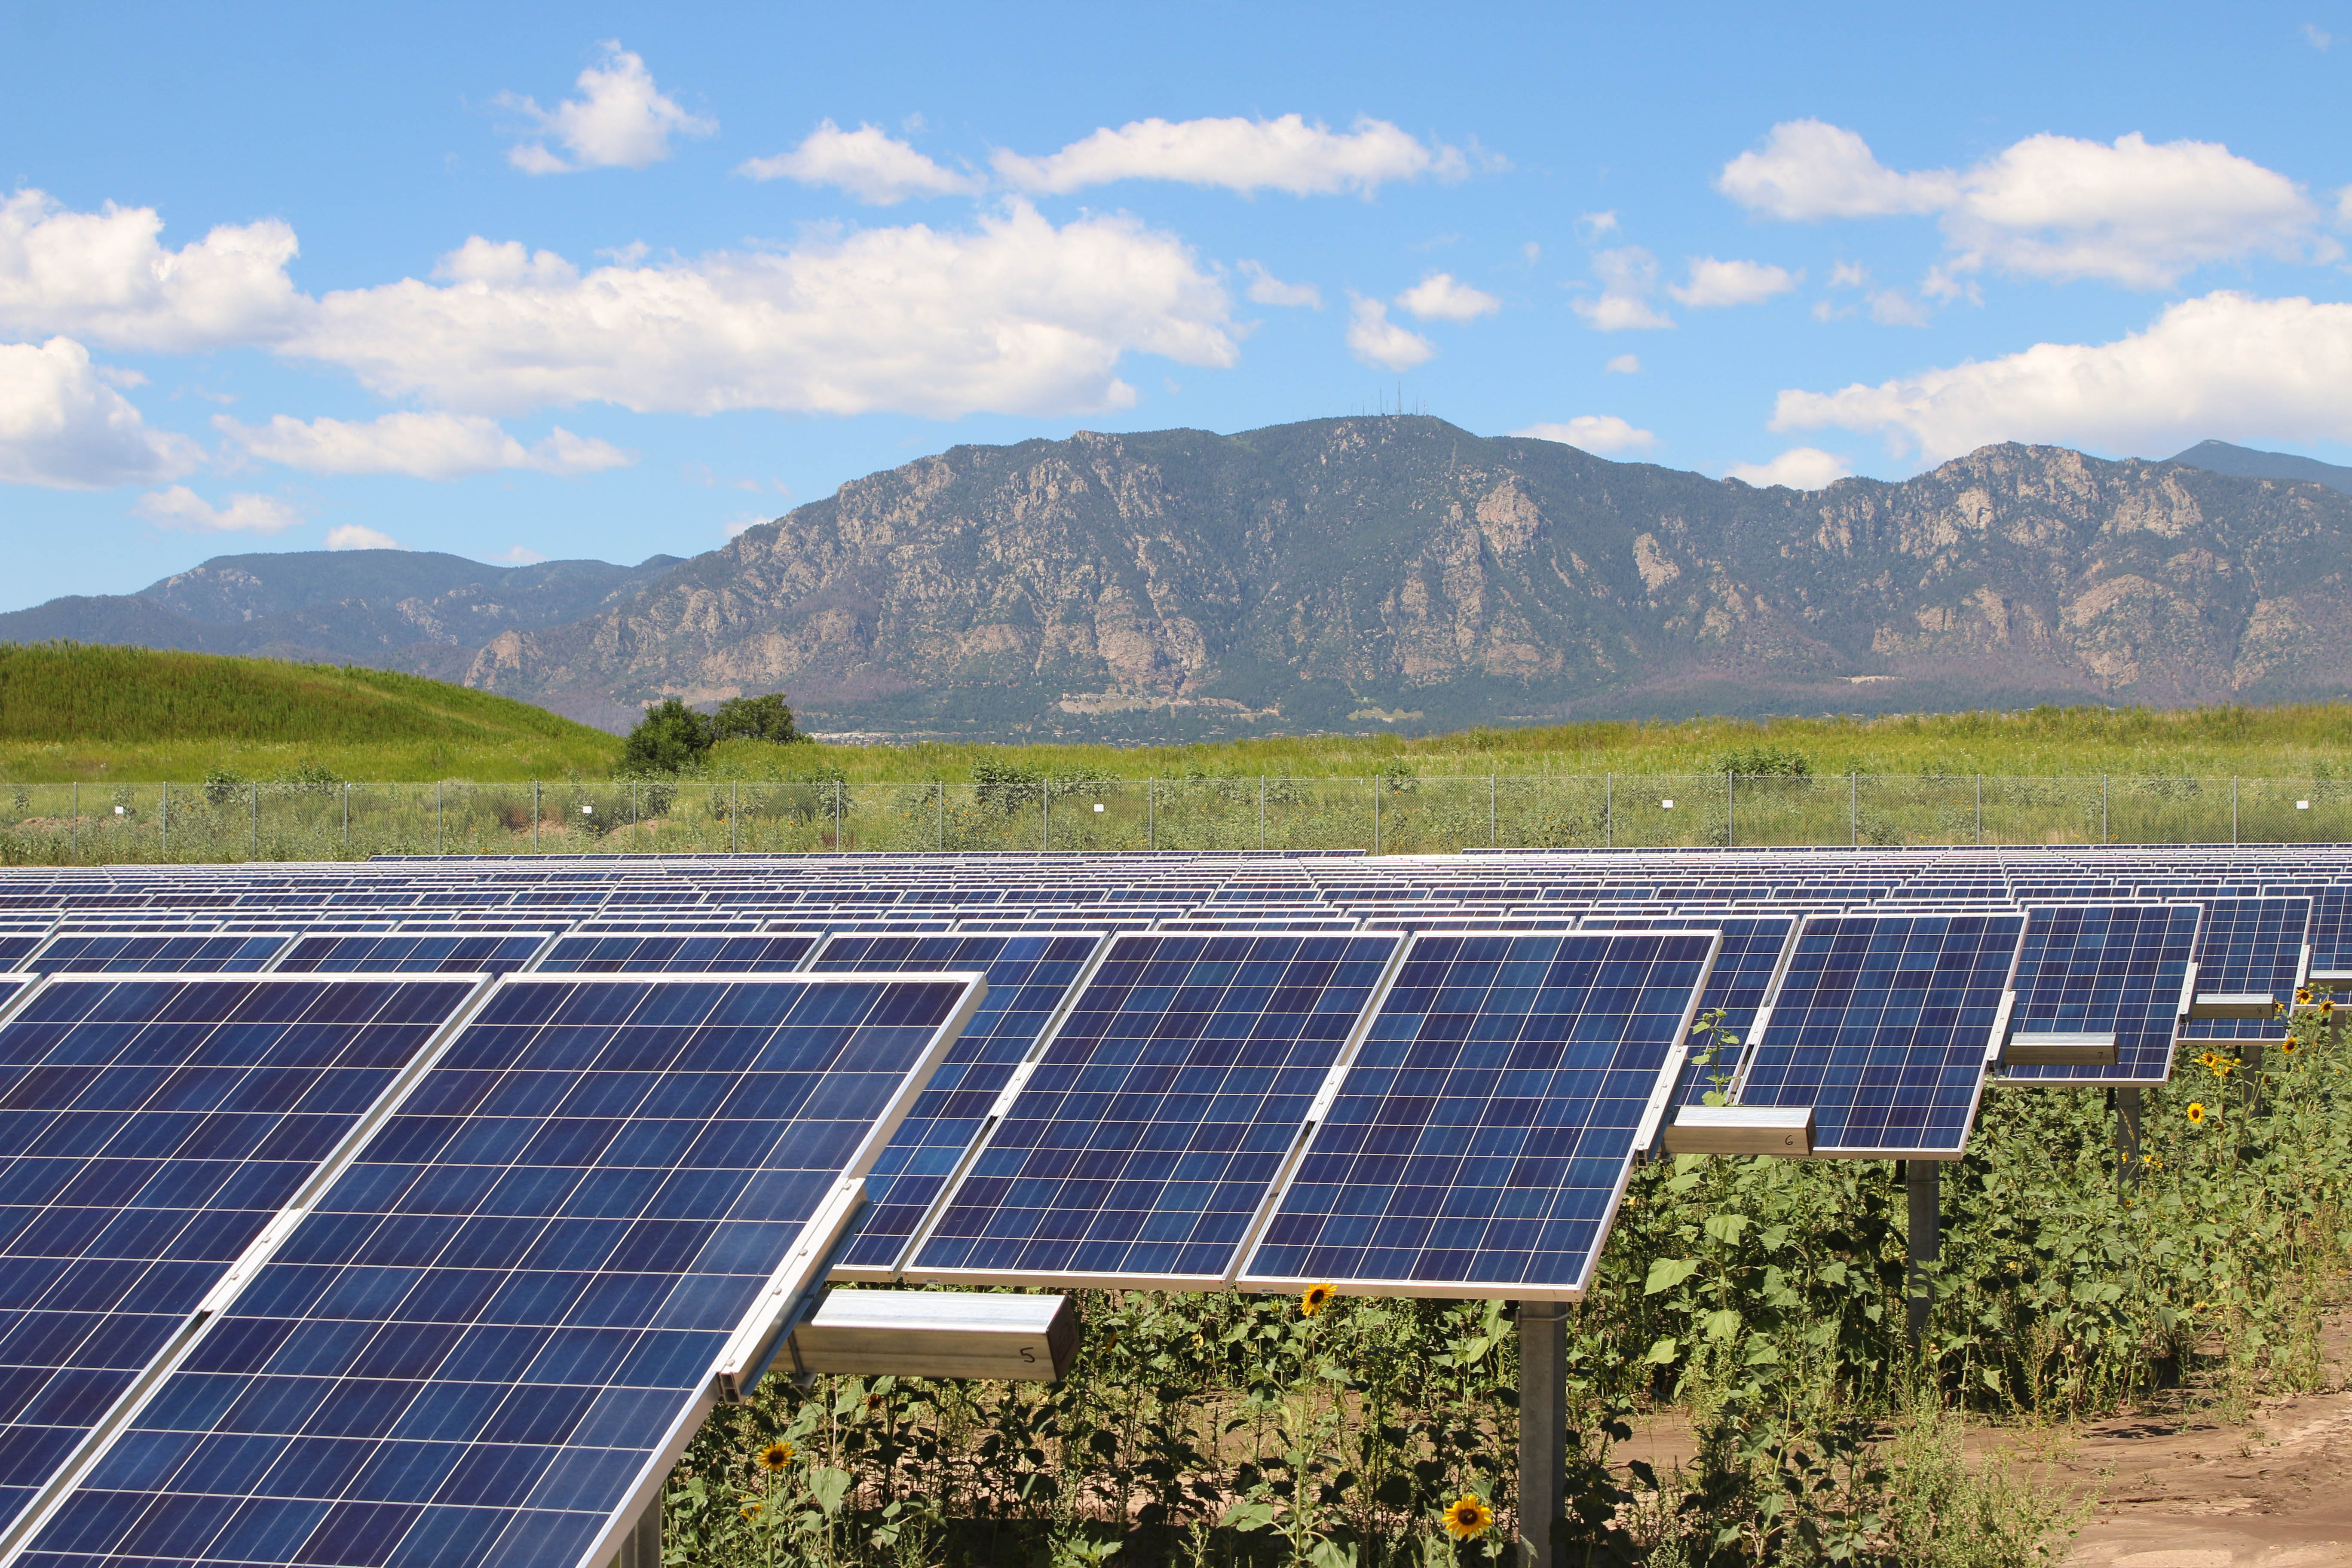 Rows of solar panels by mountains